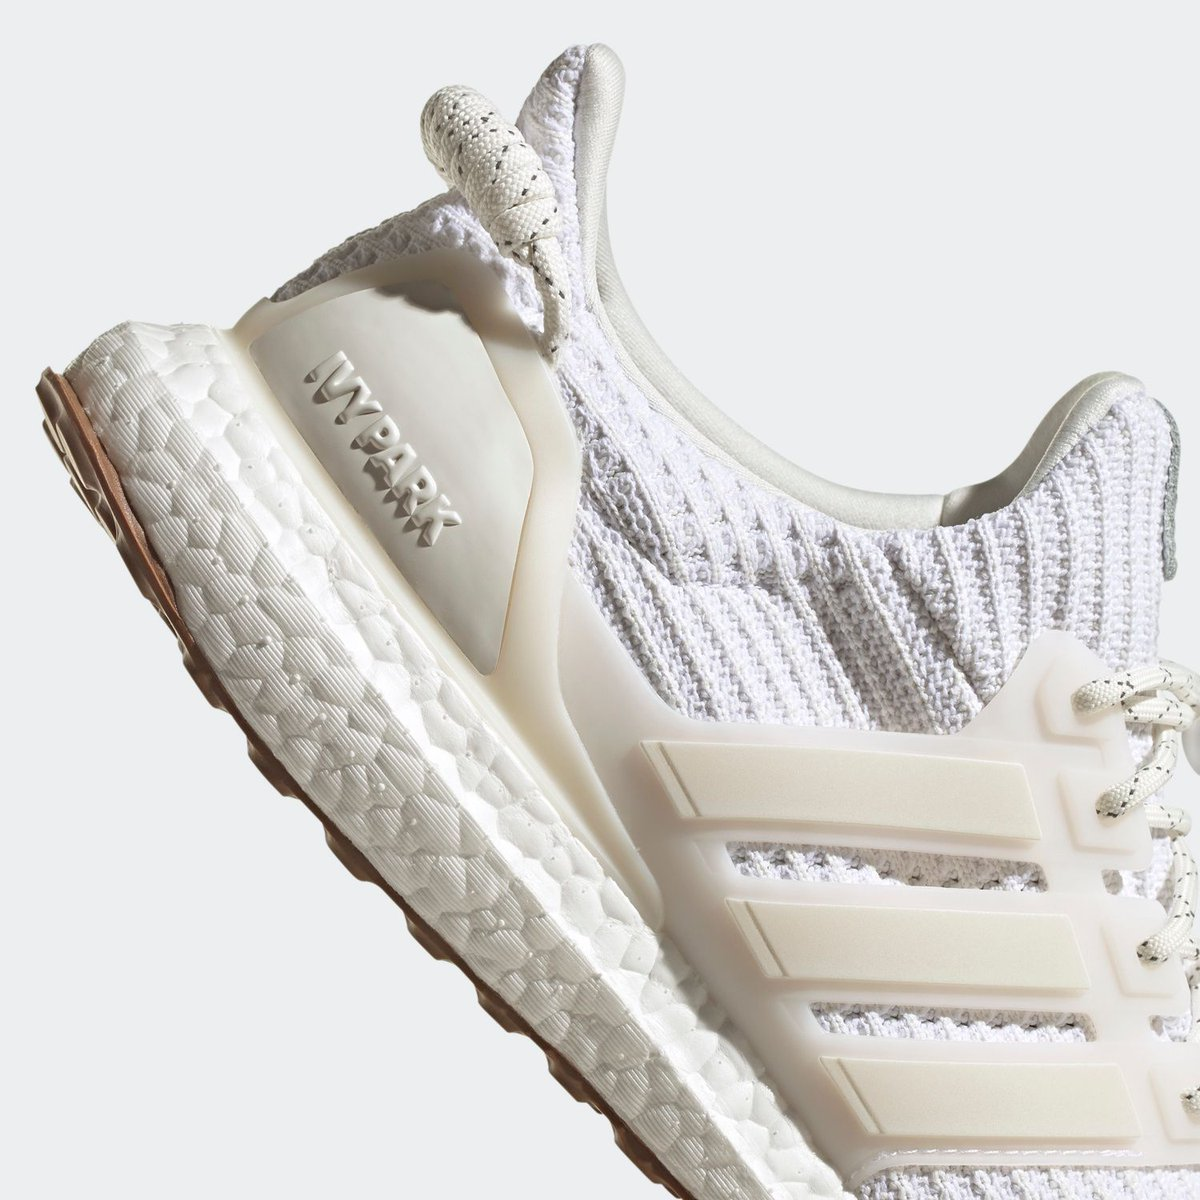 IVY PARK X ULTRABOOST 4.0 'ICY PARK'